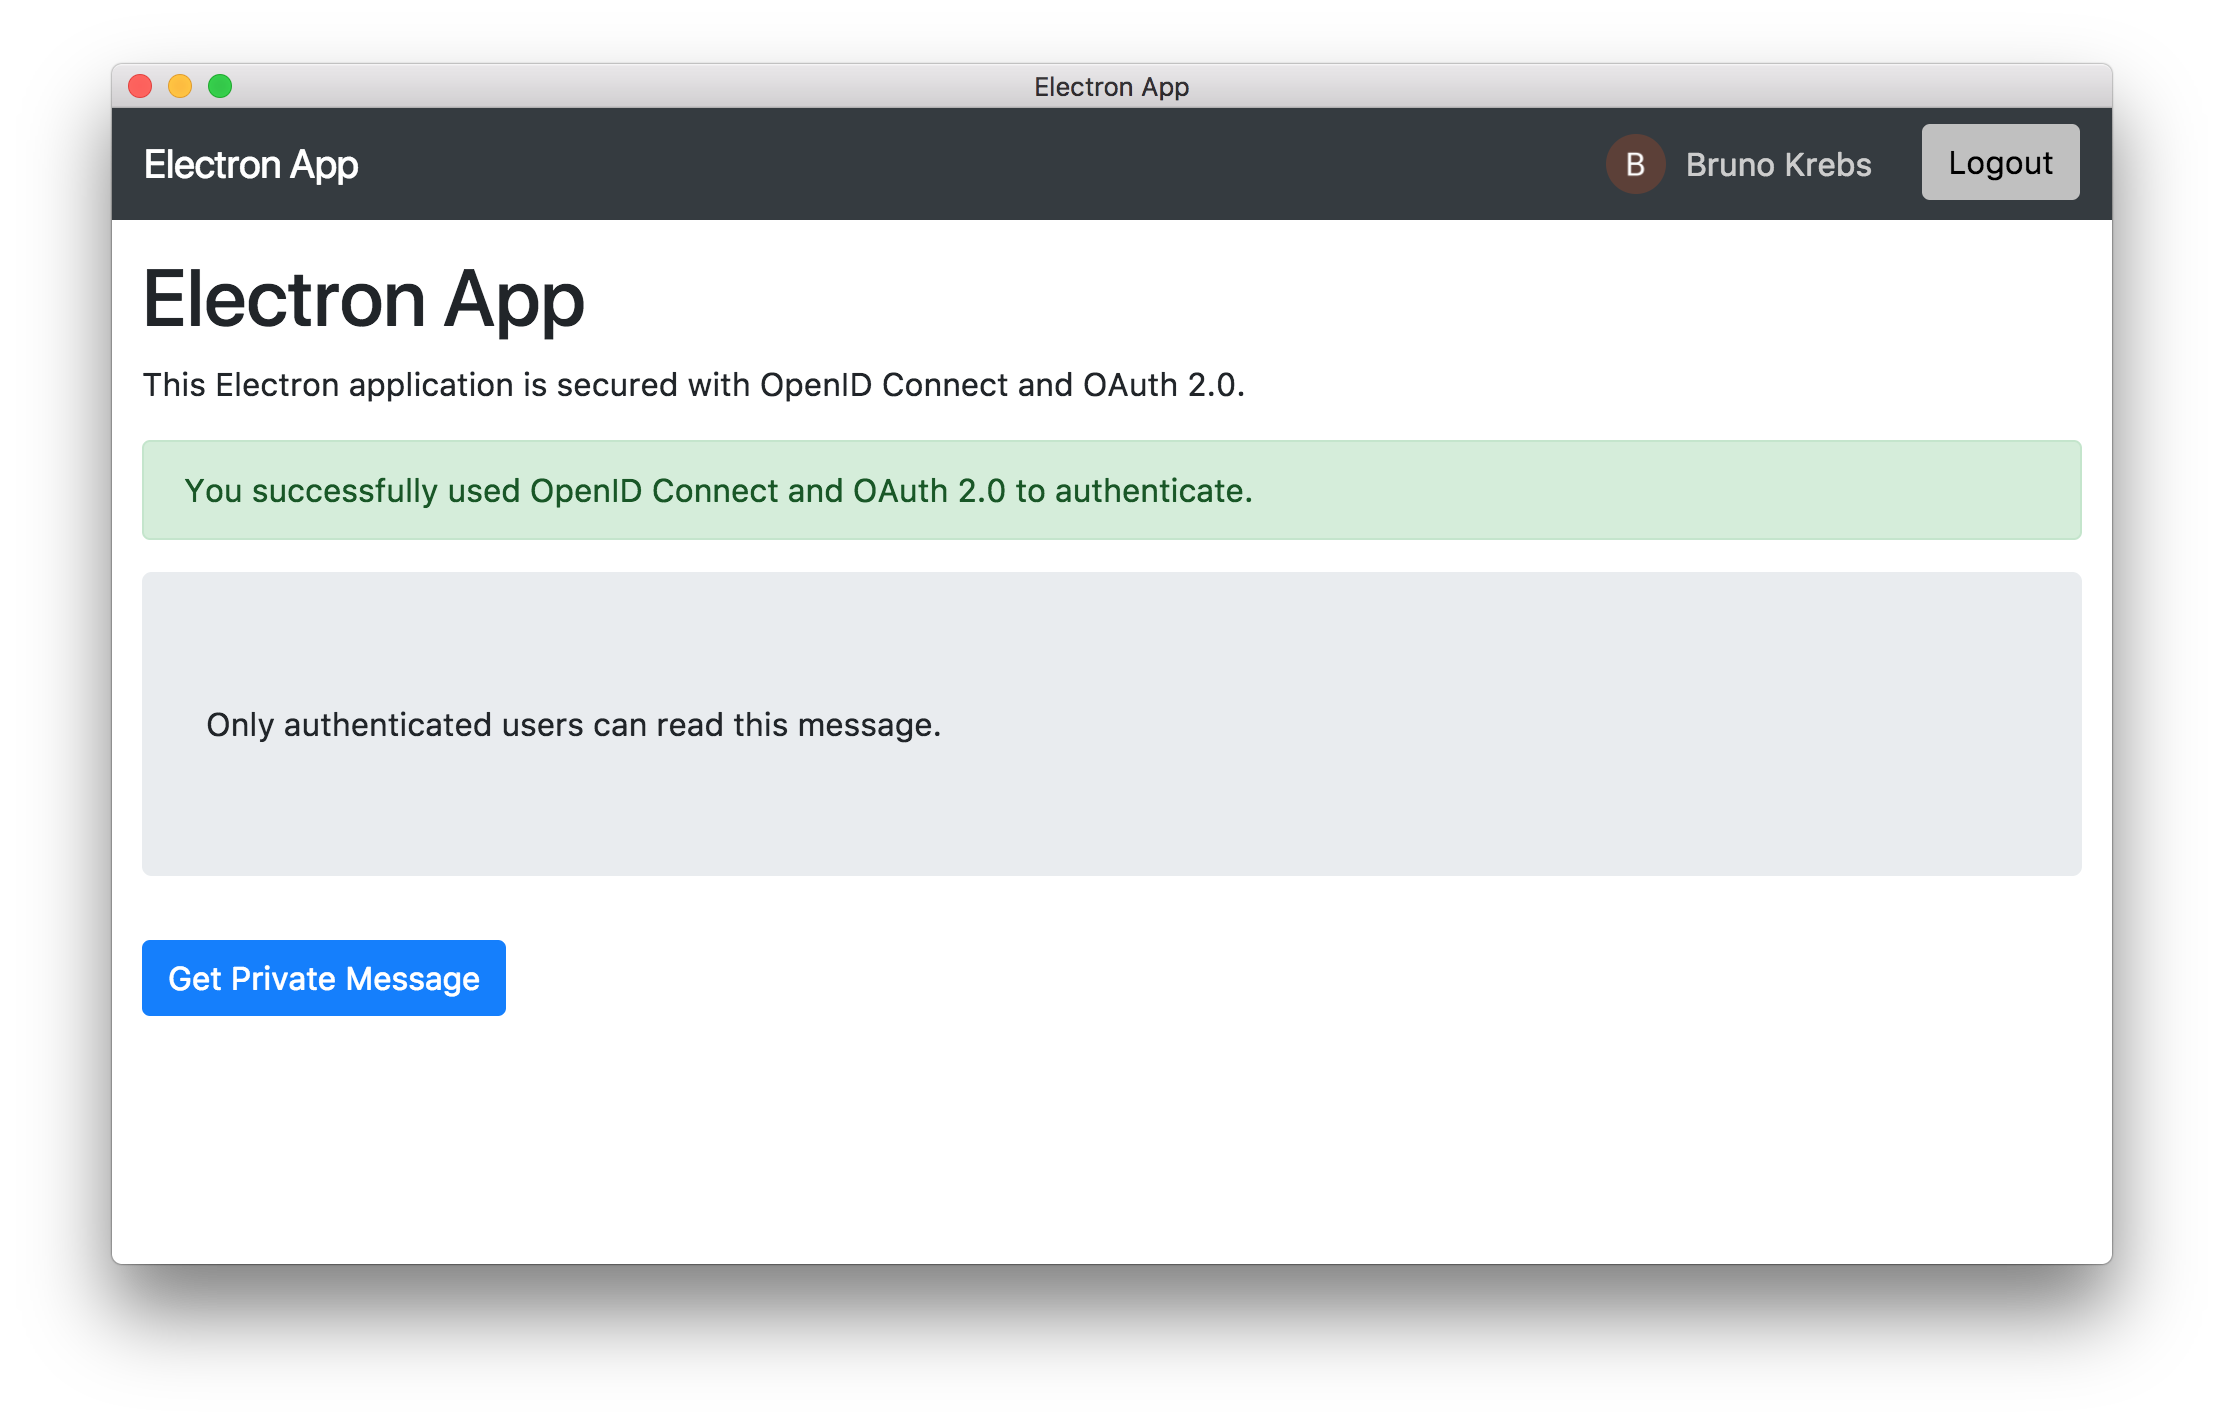 Build and Secure an Electron App - OpenID, OAuth, Node js